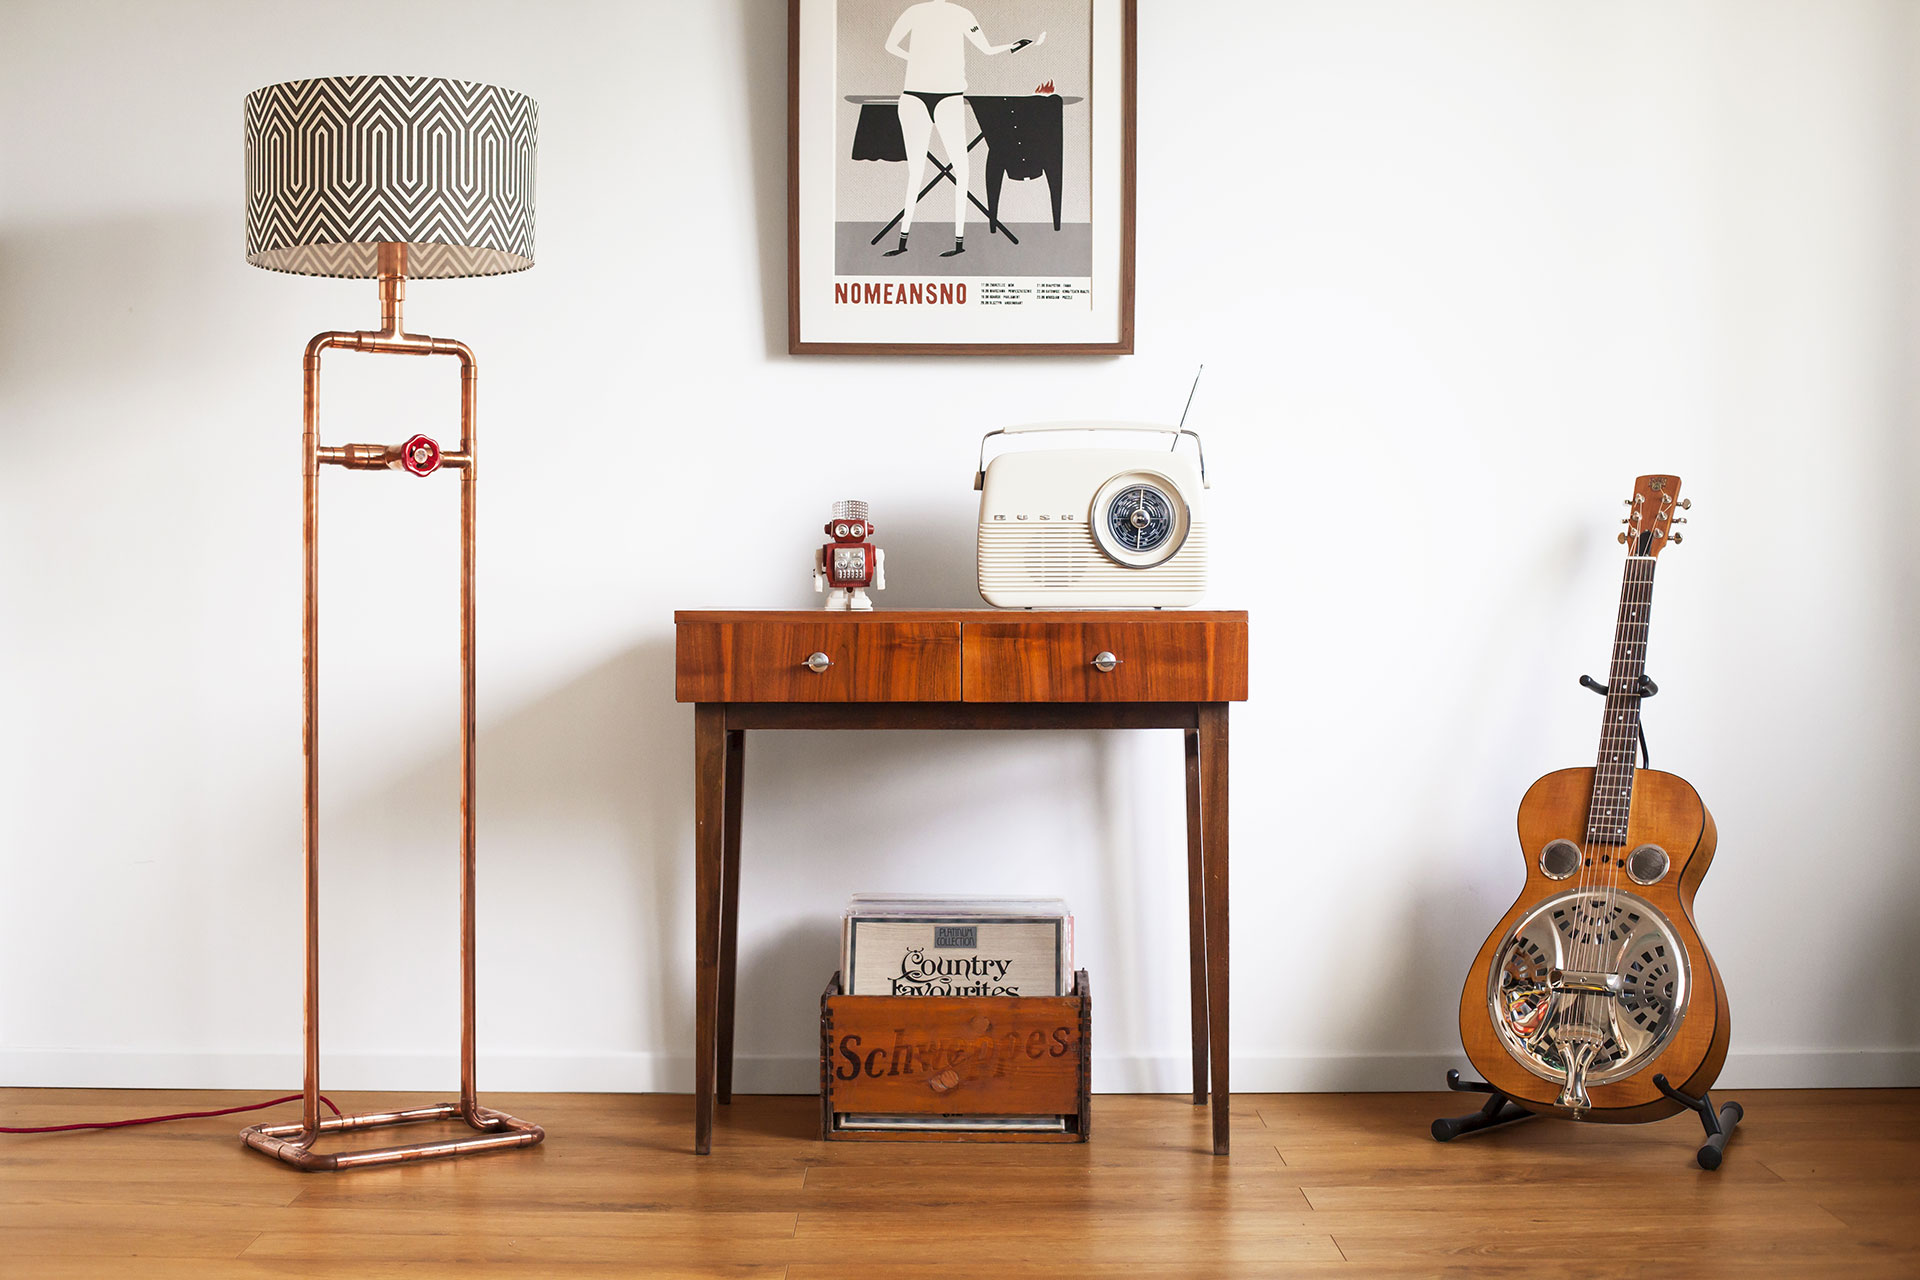 Cool dimmable copper pipe floor lamp with custom geometric shade in vintage modern apartment